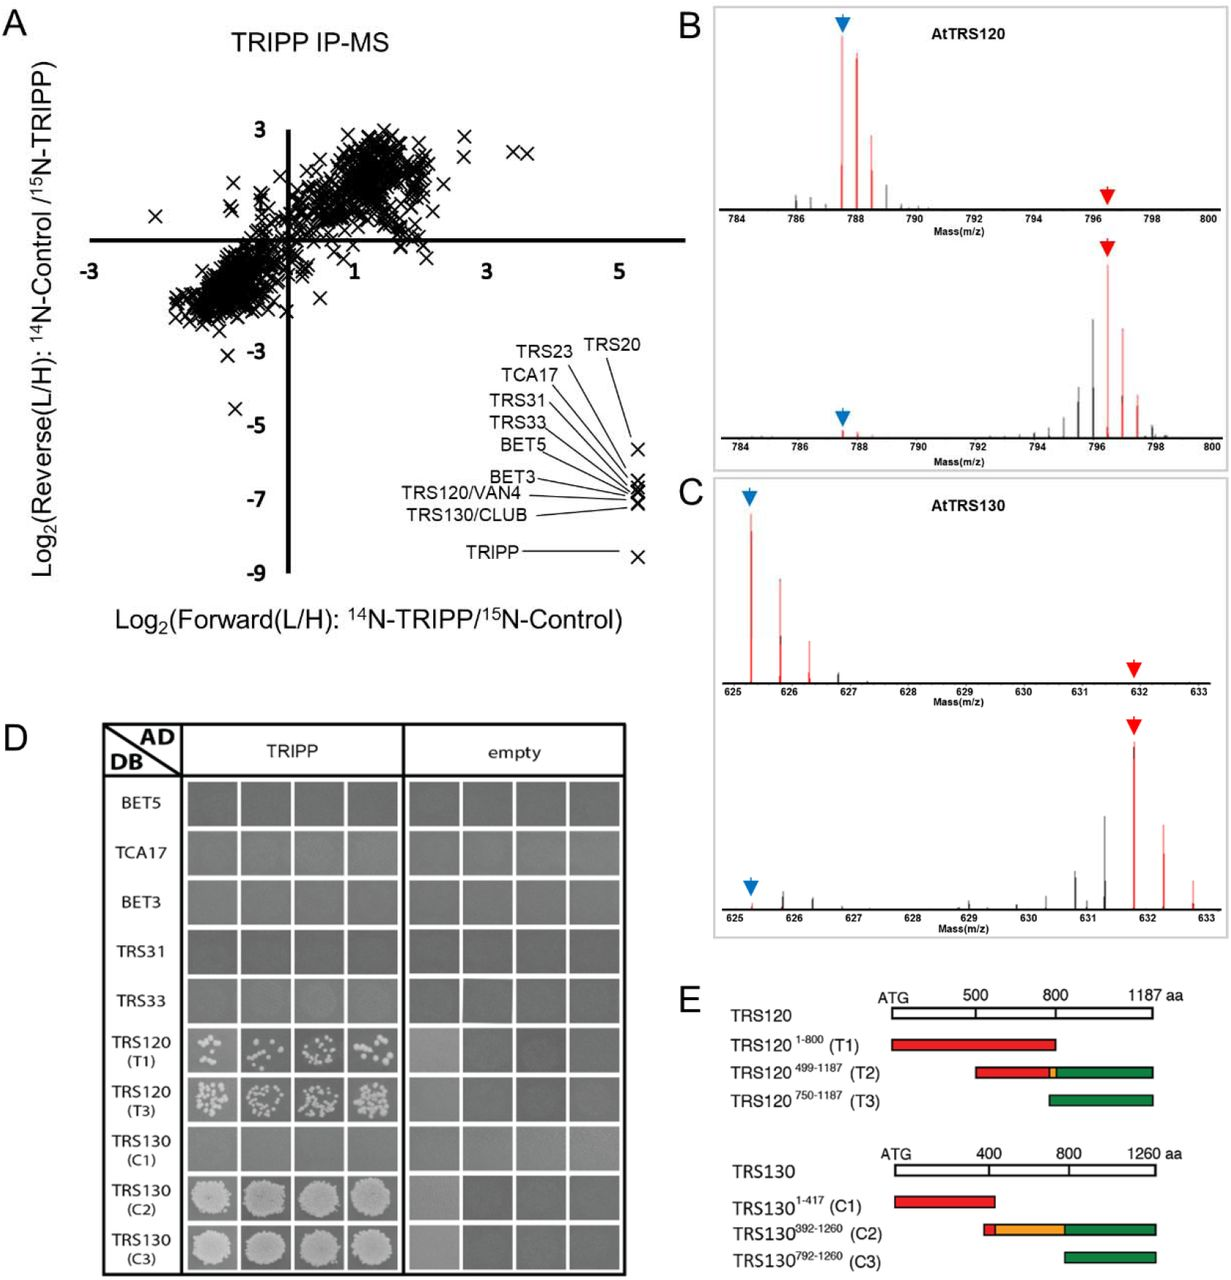 TRIPP interacts with TRAPPII subunits. A. Metabolic stable isotope labeling immunoprecipitation mass spectrometry (SILIP-MS) analysis of TRIPP identifies only TRAPPII subunits. SILIP-MS was performed using 35S:TRIPP-YFP / tripp-1 complemented plants. Plot shows log 2 ratio of signal intensities between samples labelled with light (L, 14 N) and heavy (H, 15 N) isotopes (L/H ratio) for two biological replicates, in which either the Col-0 control (Forward) or the TRIPP-YFP sample (Reciprocal) was labelled with 15 N. Note that TRAPP-III subunits are not identified in the data set. B. Representative spectra of an AtTRS120 peptide quantified in the SILIP-MS experiments of 14 N-TRIPP-YFP vs 15 N-Col-0 (upper panel) and 14 N-Col-0 vs 15 N-TRIP-YFP (lower panel). Blue and red arrow points to mono-isotopic peak of the 14 N and 15 N labeled peptide respectively. C. Representative spectra of an AtTRS130 peptide quantified in the TRIPP-YFP SILIP-MS experiments as descried for panel B. D. Yeast two-hybrid assays of interactions between TRIPP and TRAPP subunits. The panels are from different plates. Four independent replicate experiments were performed. The results show interactions of TRIPP with both T1 and T3 regions of AtTRS120 and with the plant specific C2/C3_DB AtTRS130 regions. T2_DB is not included as it is an auto activator, as evidenced by colony growth with the empt AD vector, and this precludes our ability to determine whether AtTRS120_T2 interacts with TRIPP. E. TRAPPII coding regions used for yeast two-hybrid interaction assays. Segments colored in red are conserved across kingdoms, while those in green are plant-specific. The orange moiety of the C2 segment is poorly conserved across kingdoms. The T2 middle segment corresponds to sequences found to interact with the exocyst in a yeast two-hybrid screen ( Rybak et al., 2014 ).